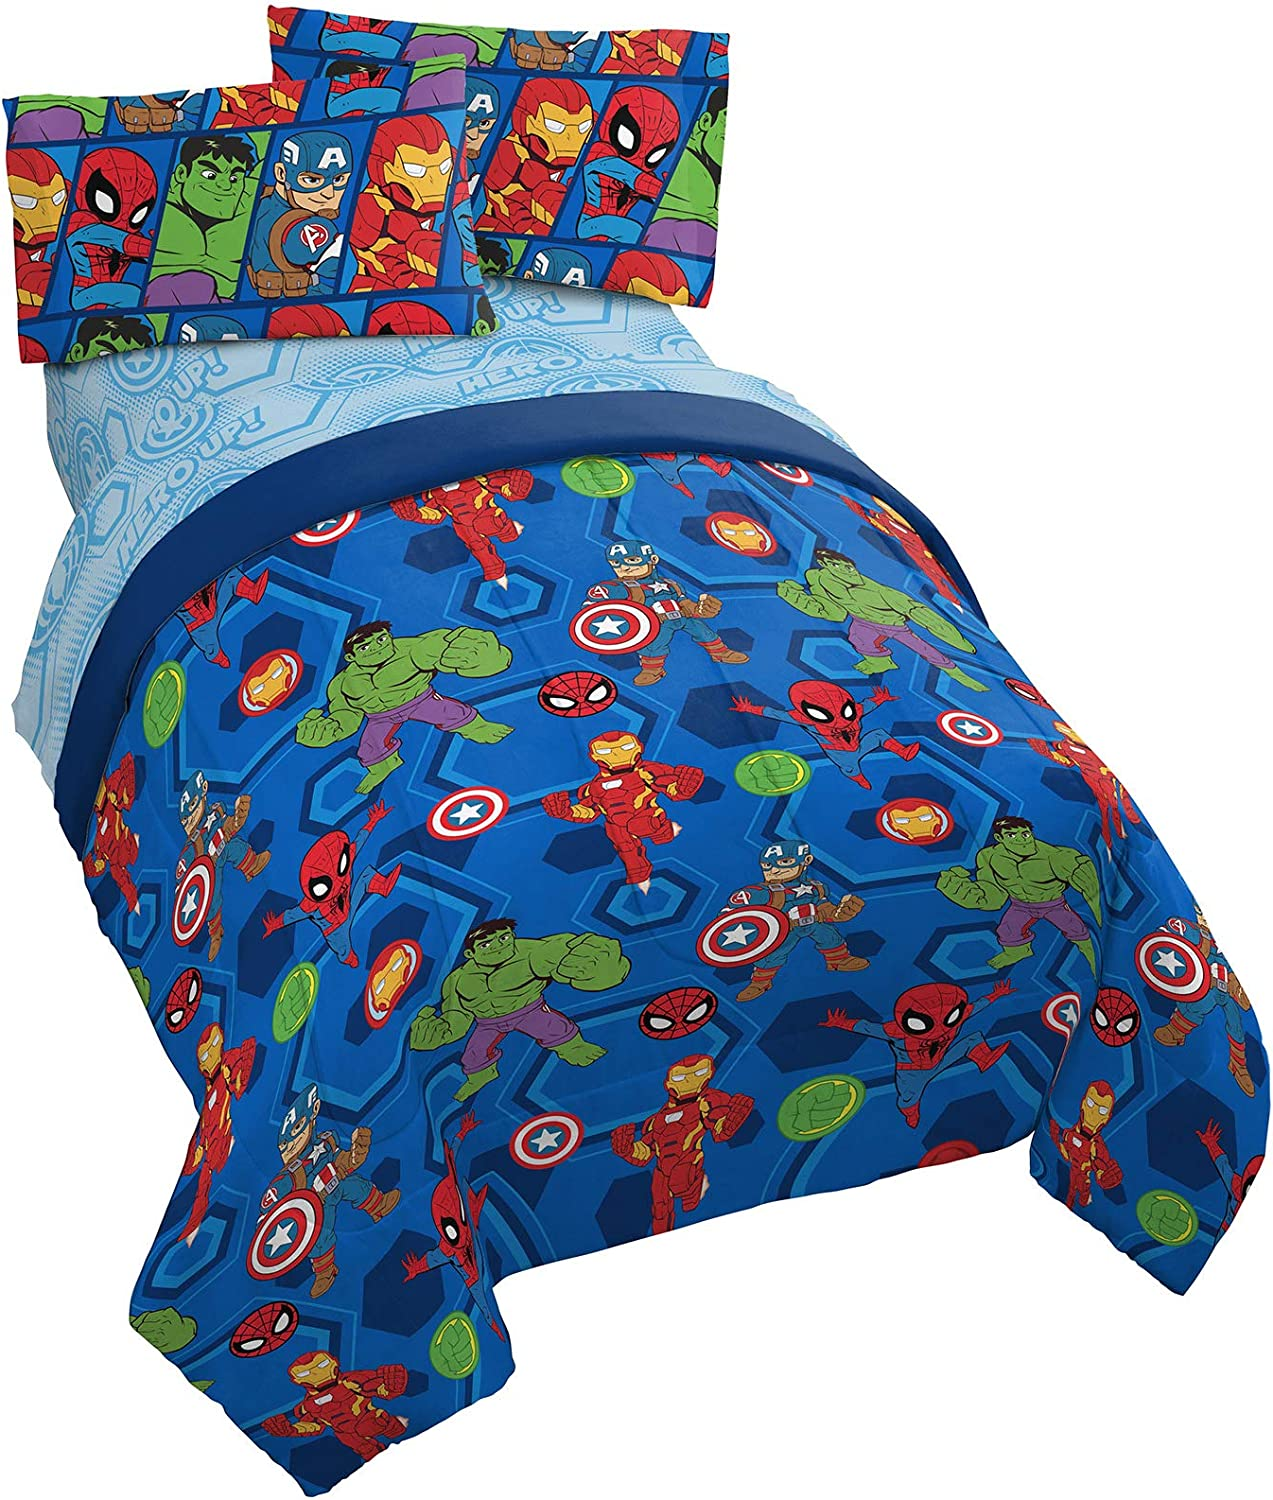 Marvel Super Hero Adventures Hero Together 5 Piece Full Bed Set - Includes Comforter & Sheet Set Bedding Features The Avengers - Super Soft Fade Resistant Microfiber (Official Marvel Product)